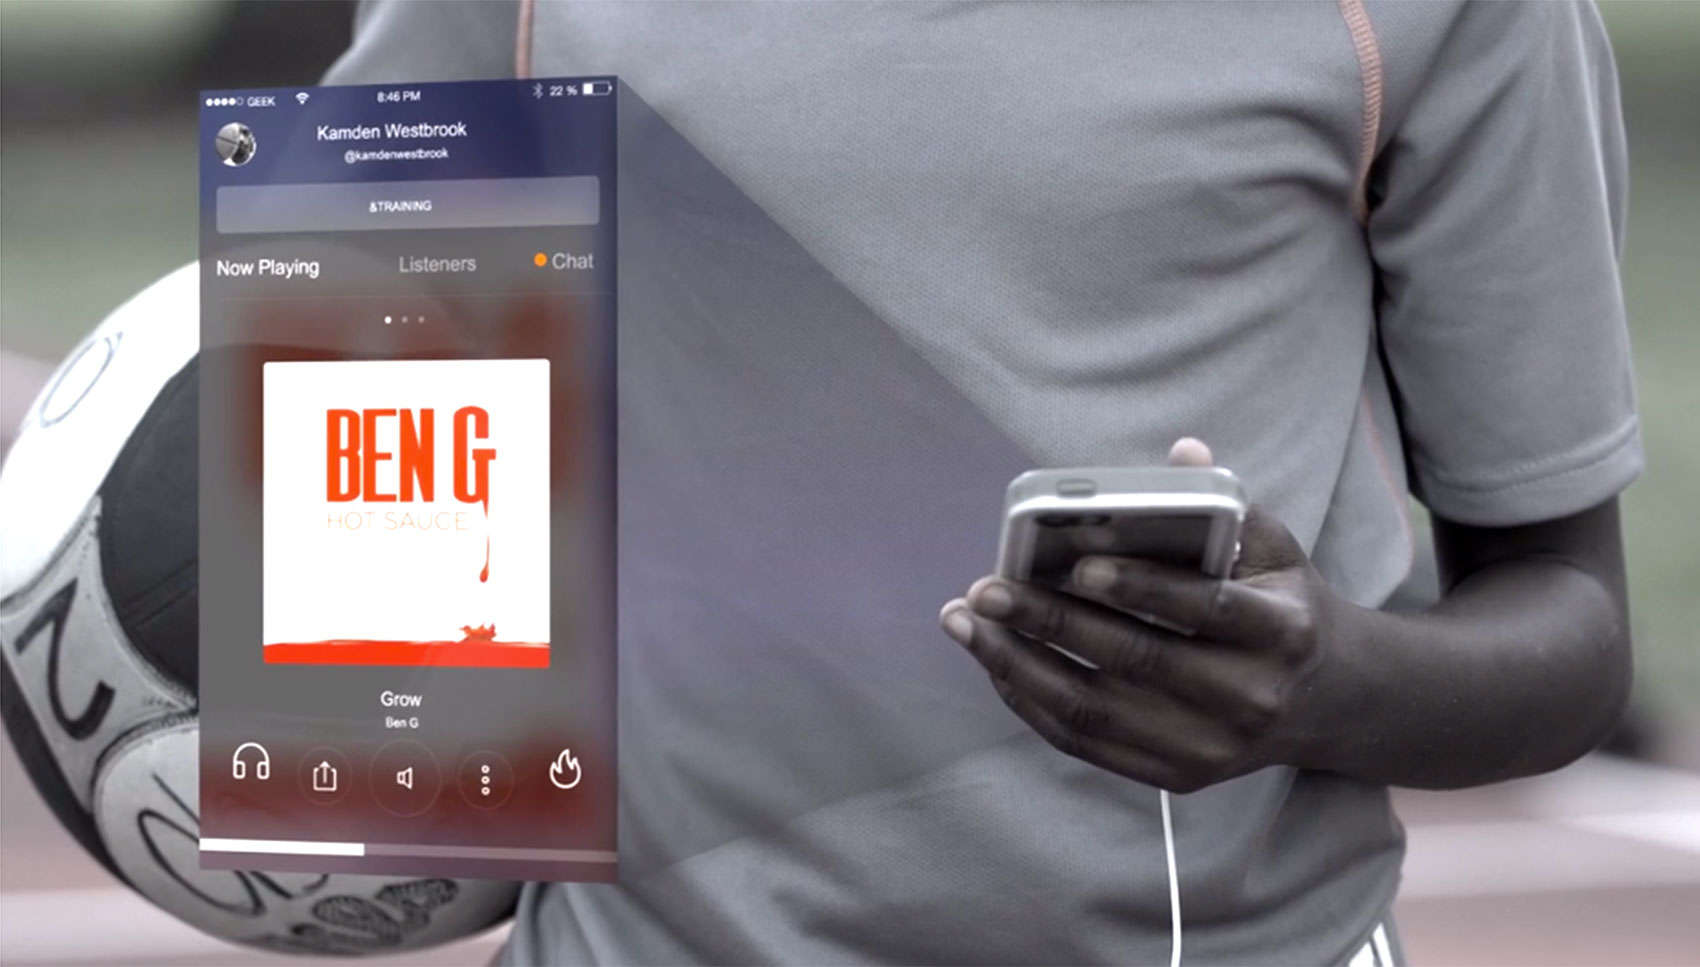 The Geekin Radio app lets users listen to music together in real time.